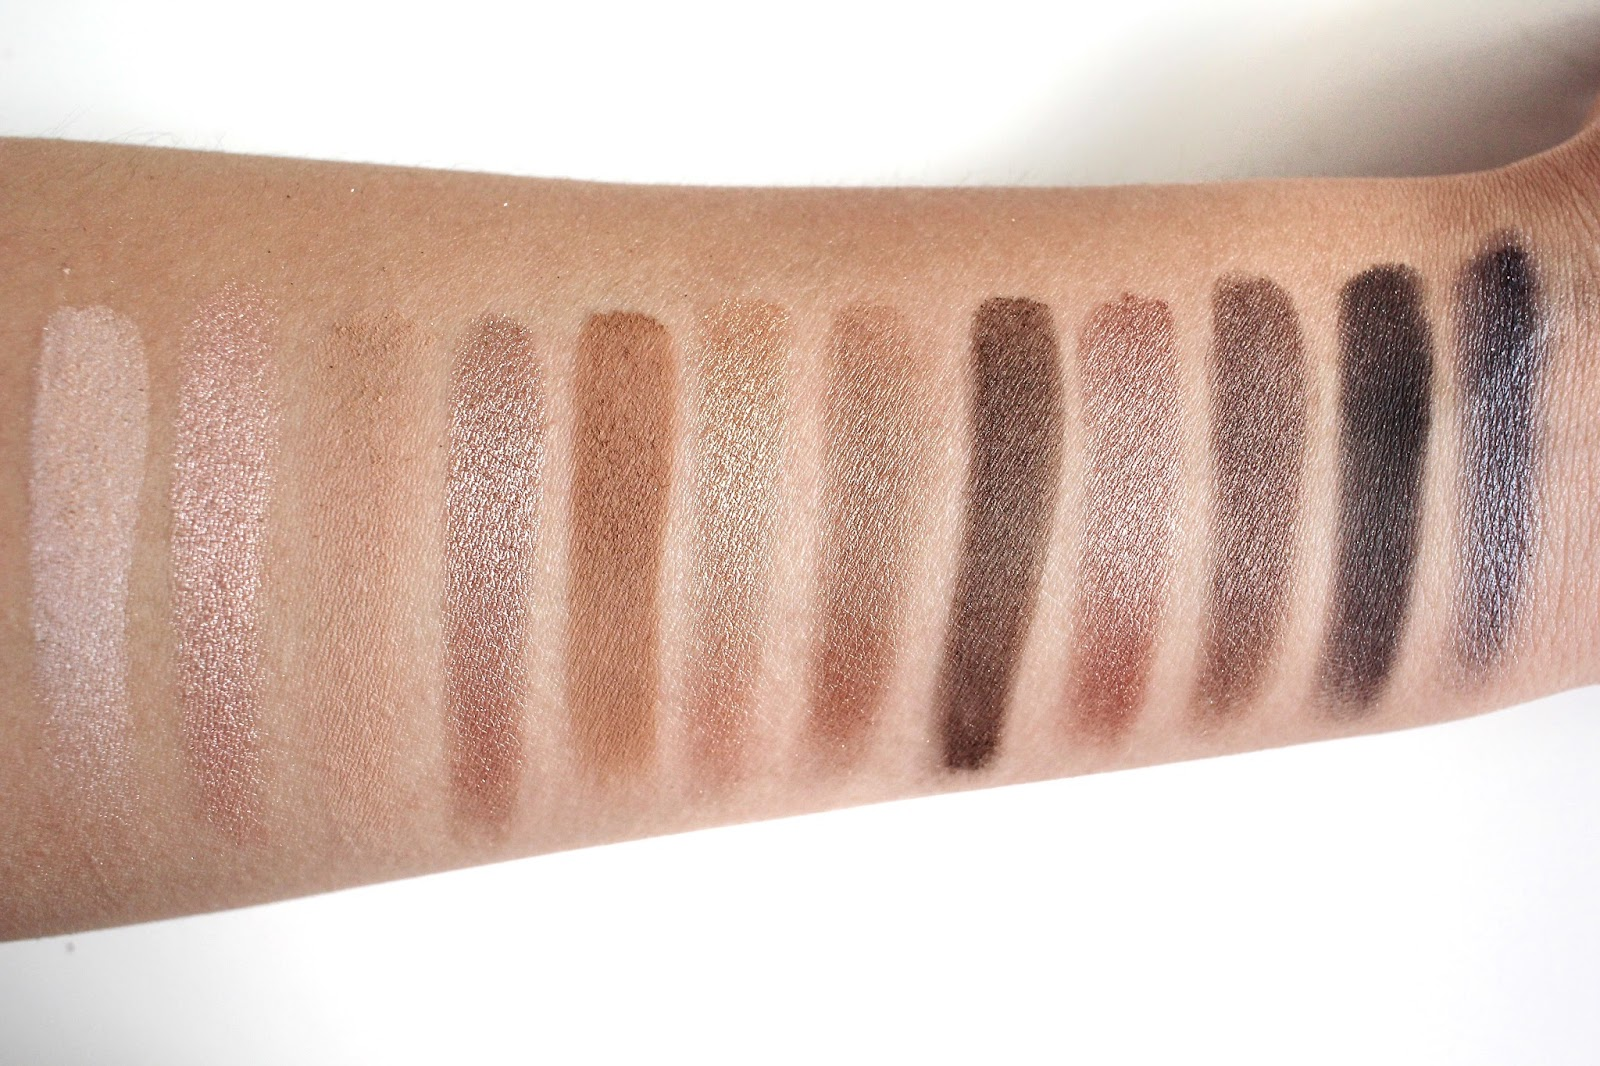 Urban decay naked palette swatches images 42